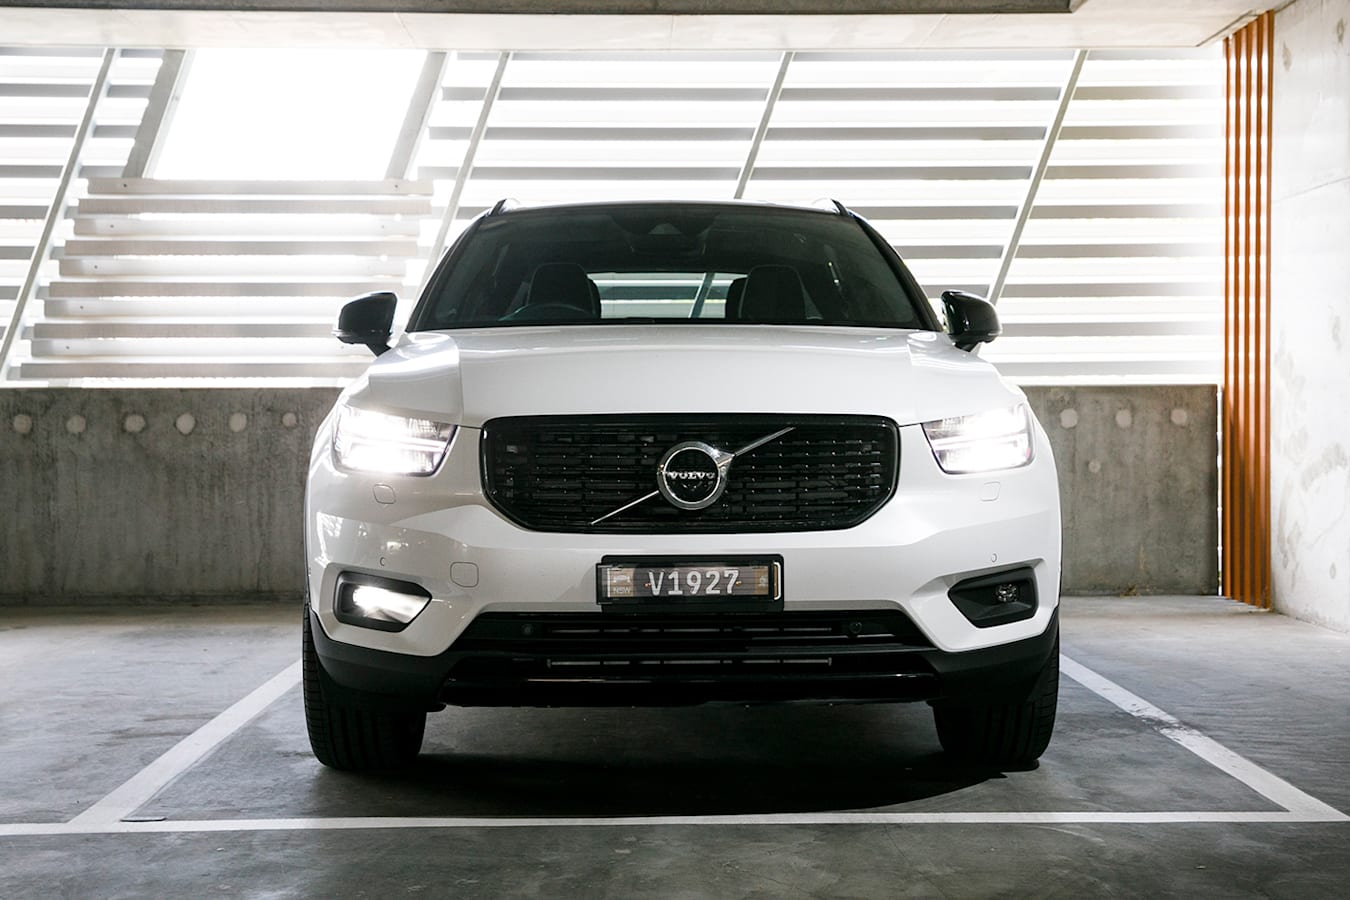 2019 Volvo XC40 T5 front end and grille